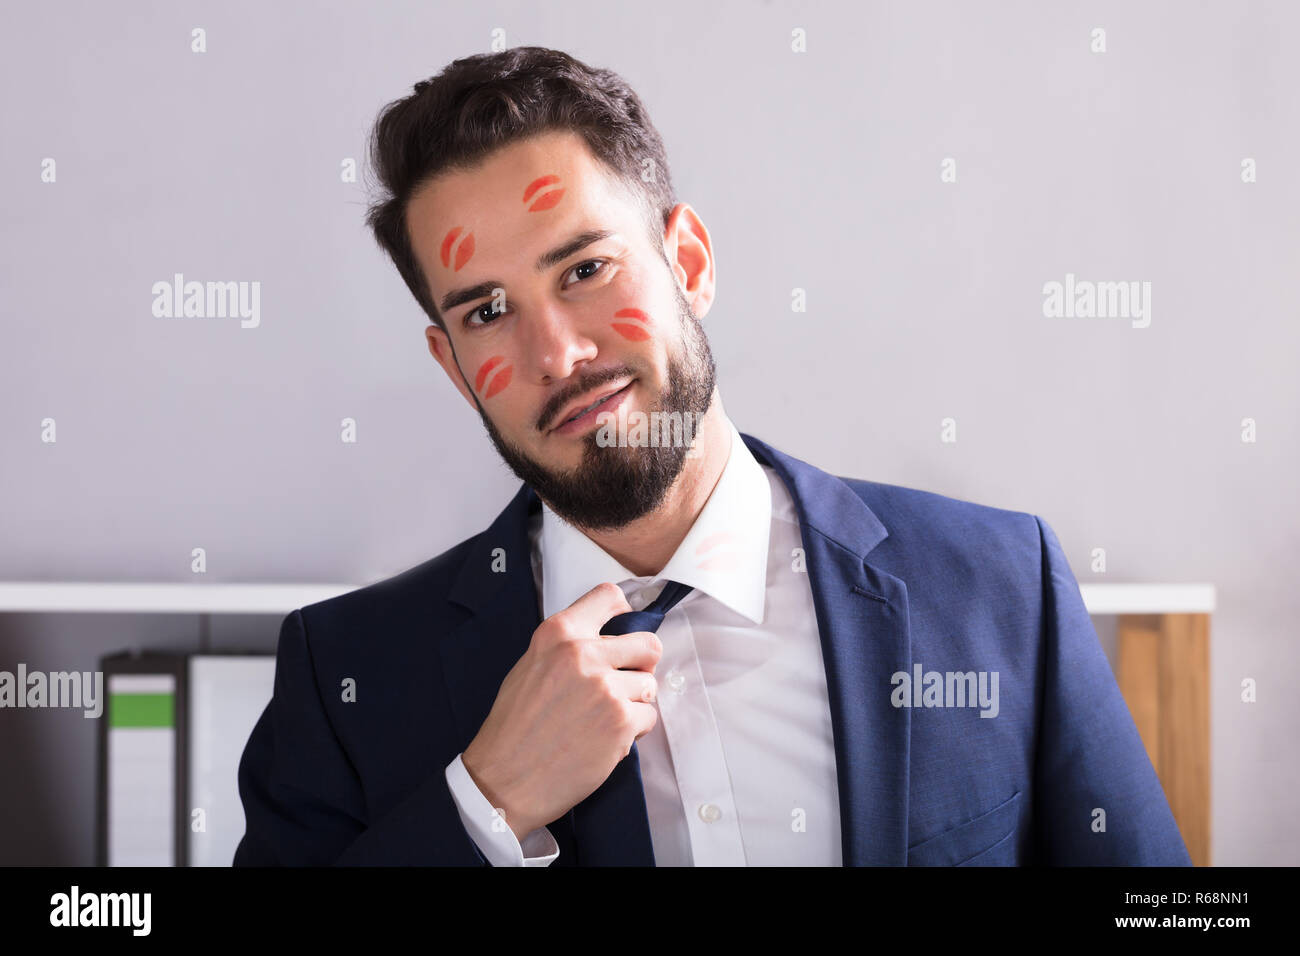 Businessman With Lipstick Kiss Marks On Face - Stock Image